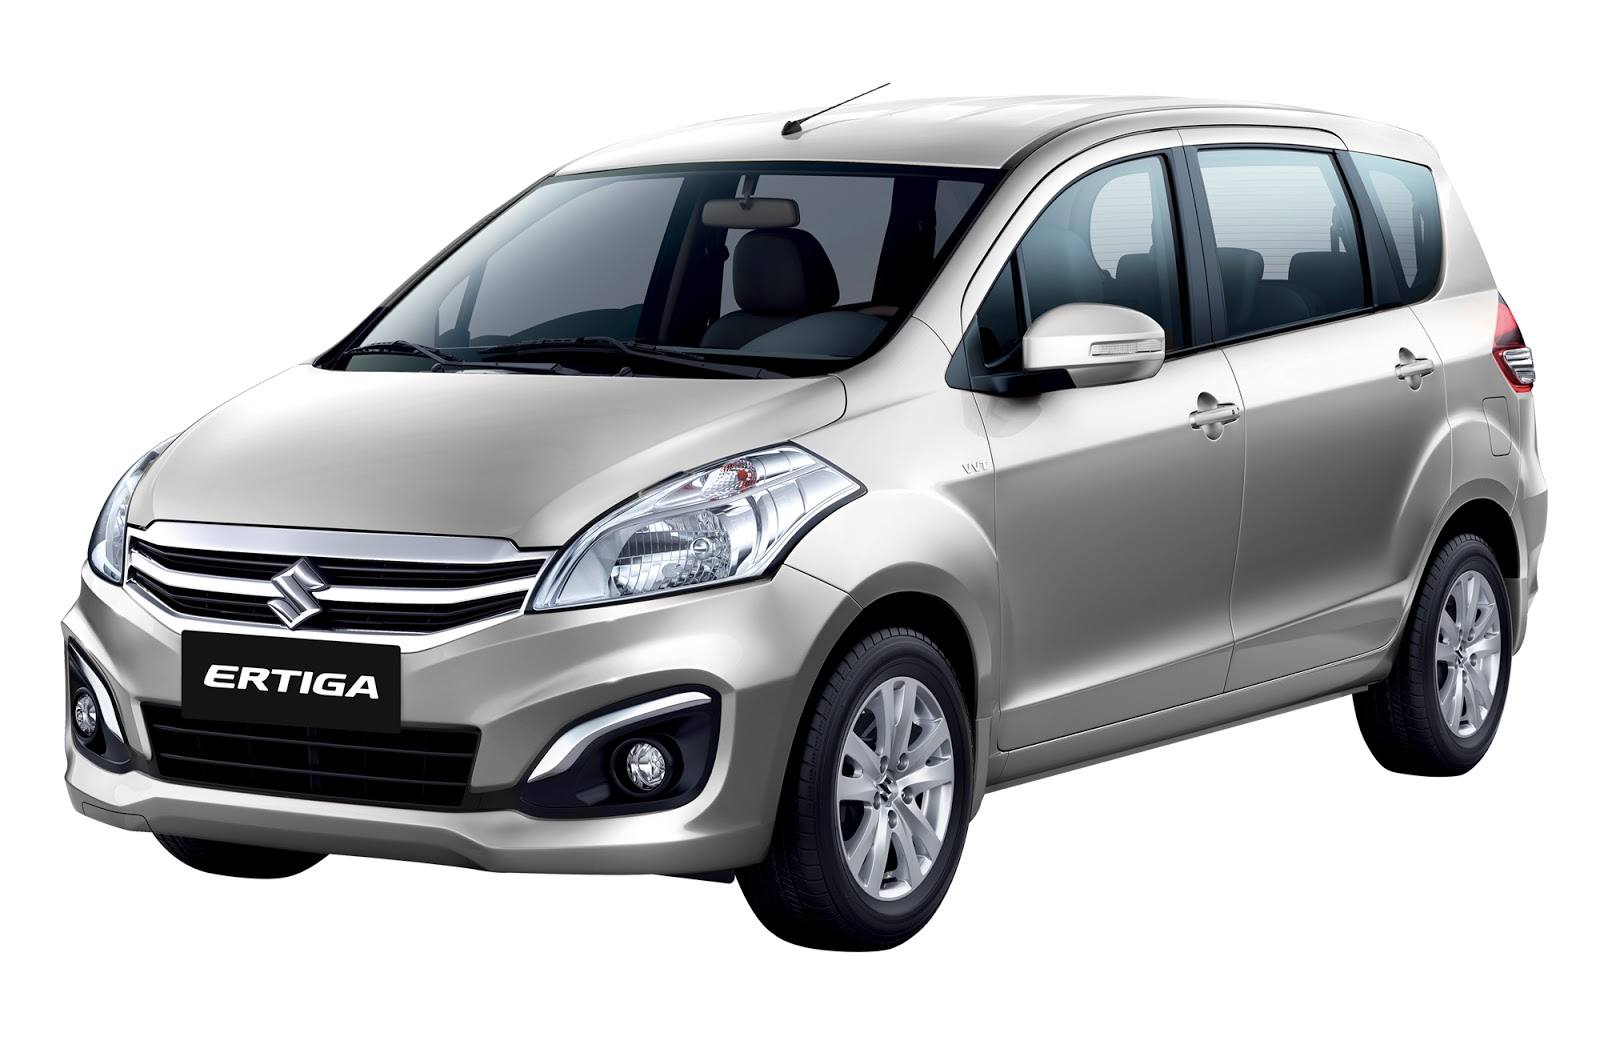 welcome the new 2016 suzuki ertiga now with more reasons to luv compact cars ilonggo tech blog. Black Bedroom Furniture Sets. Home Design Ideas